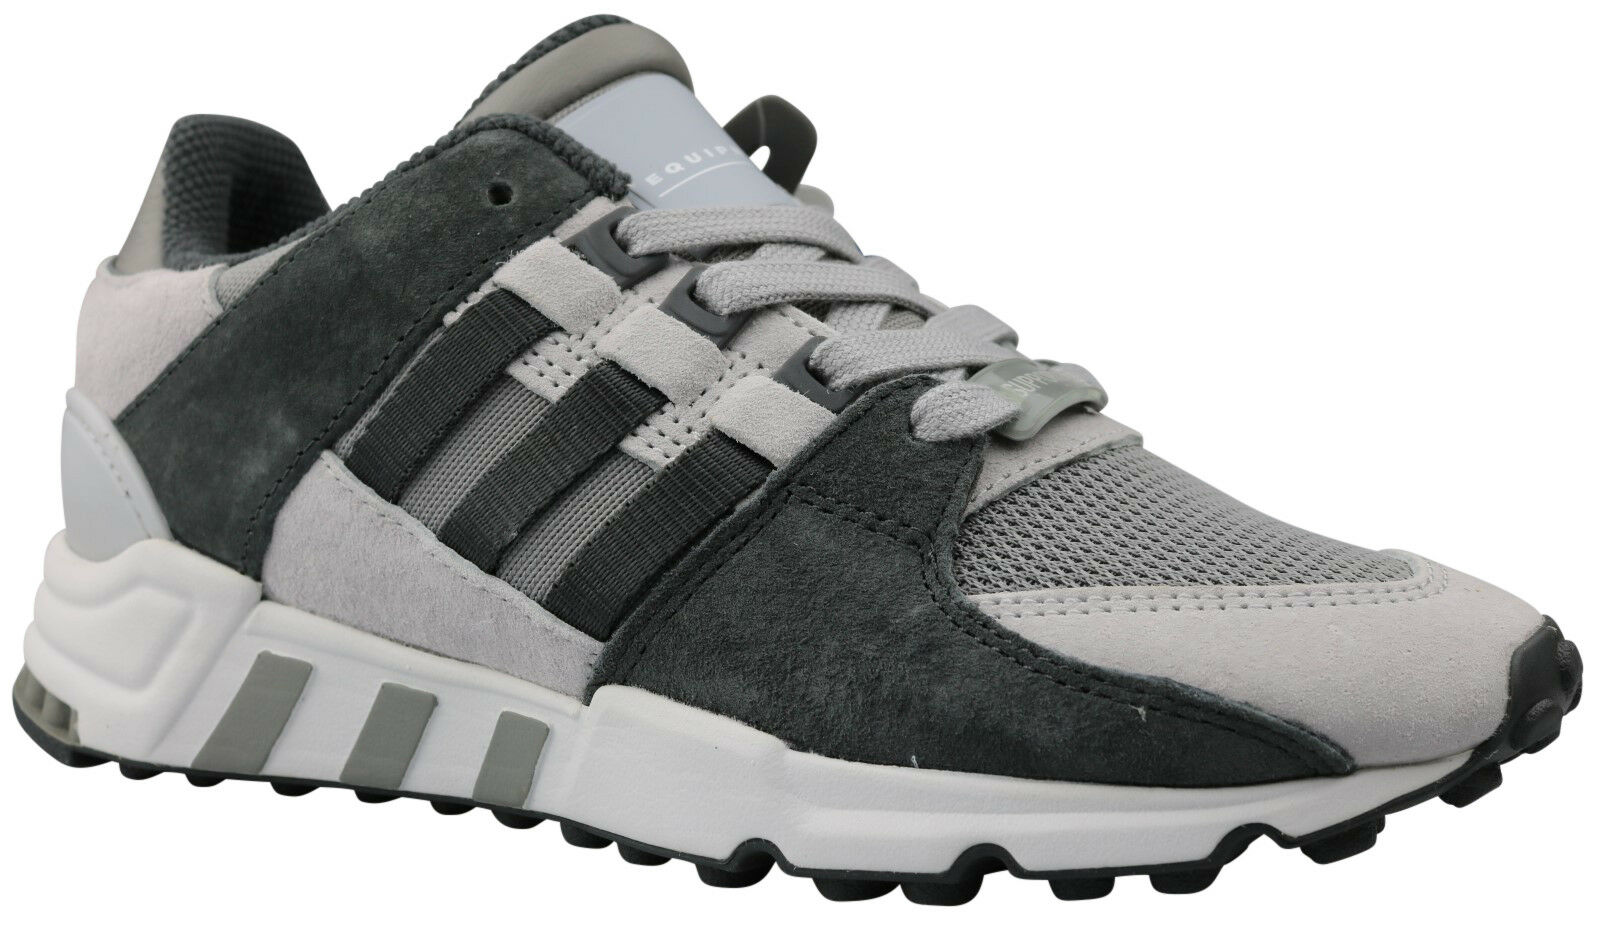 ADIDAS Originals EQT EQUIPMENT Taglia SUPPORT Sneaker RF bb1317 Taglia EQUIPMENT 36 36,5 40,5 NUOVO OVP 12603c